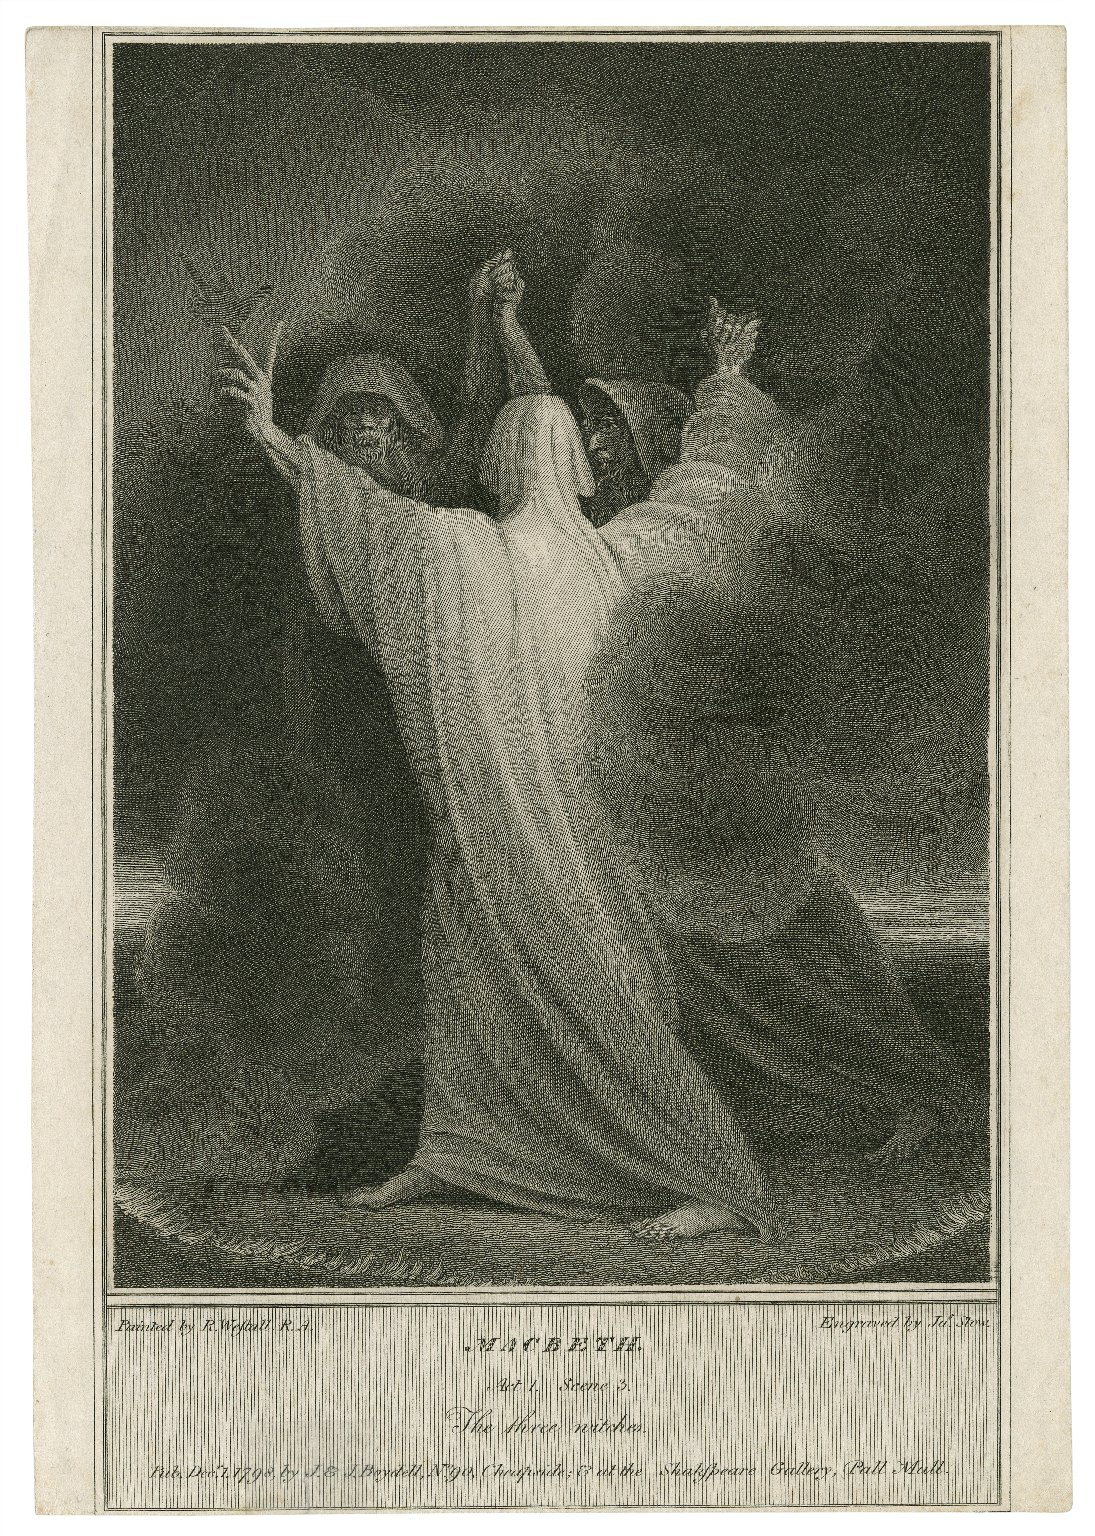 Macbeth, act 1, scene 3, the three witches [graphic] / painted by R. Westall, R.A. ; engraved by Jas. Stow.